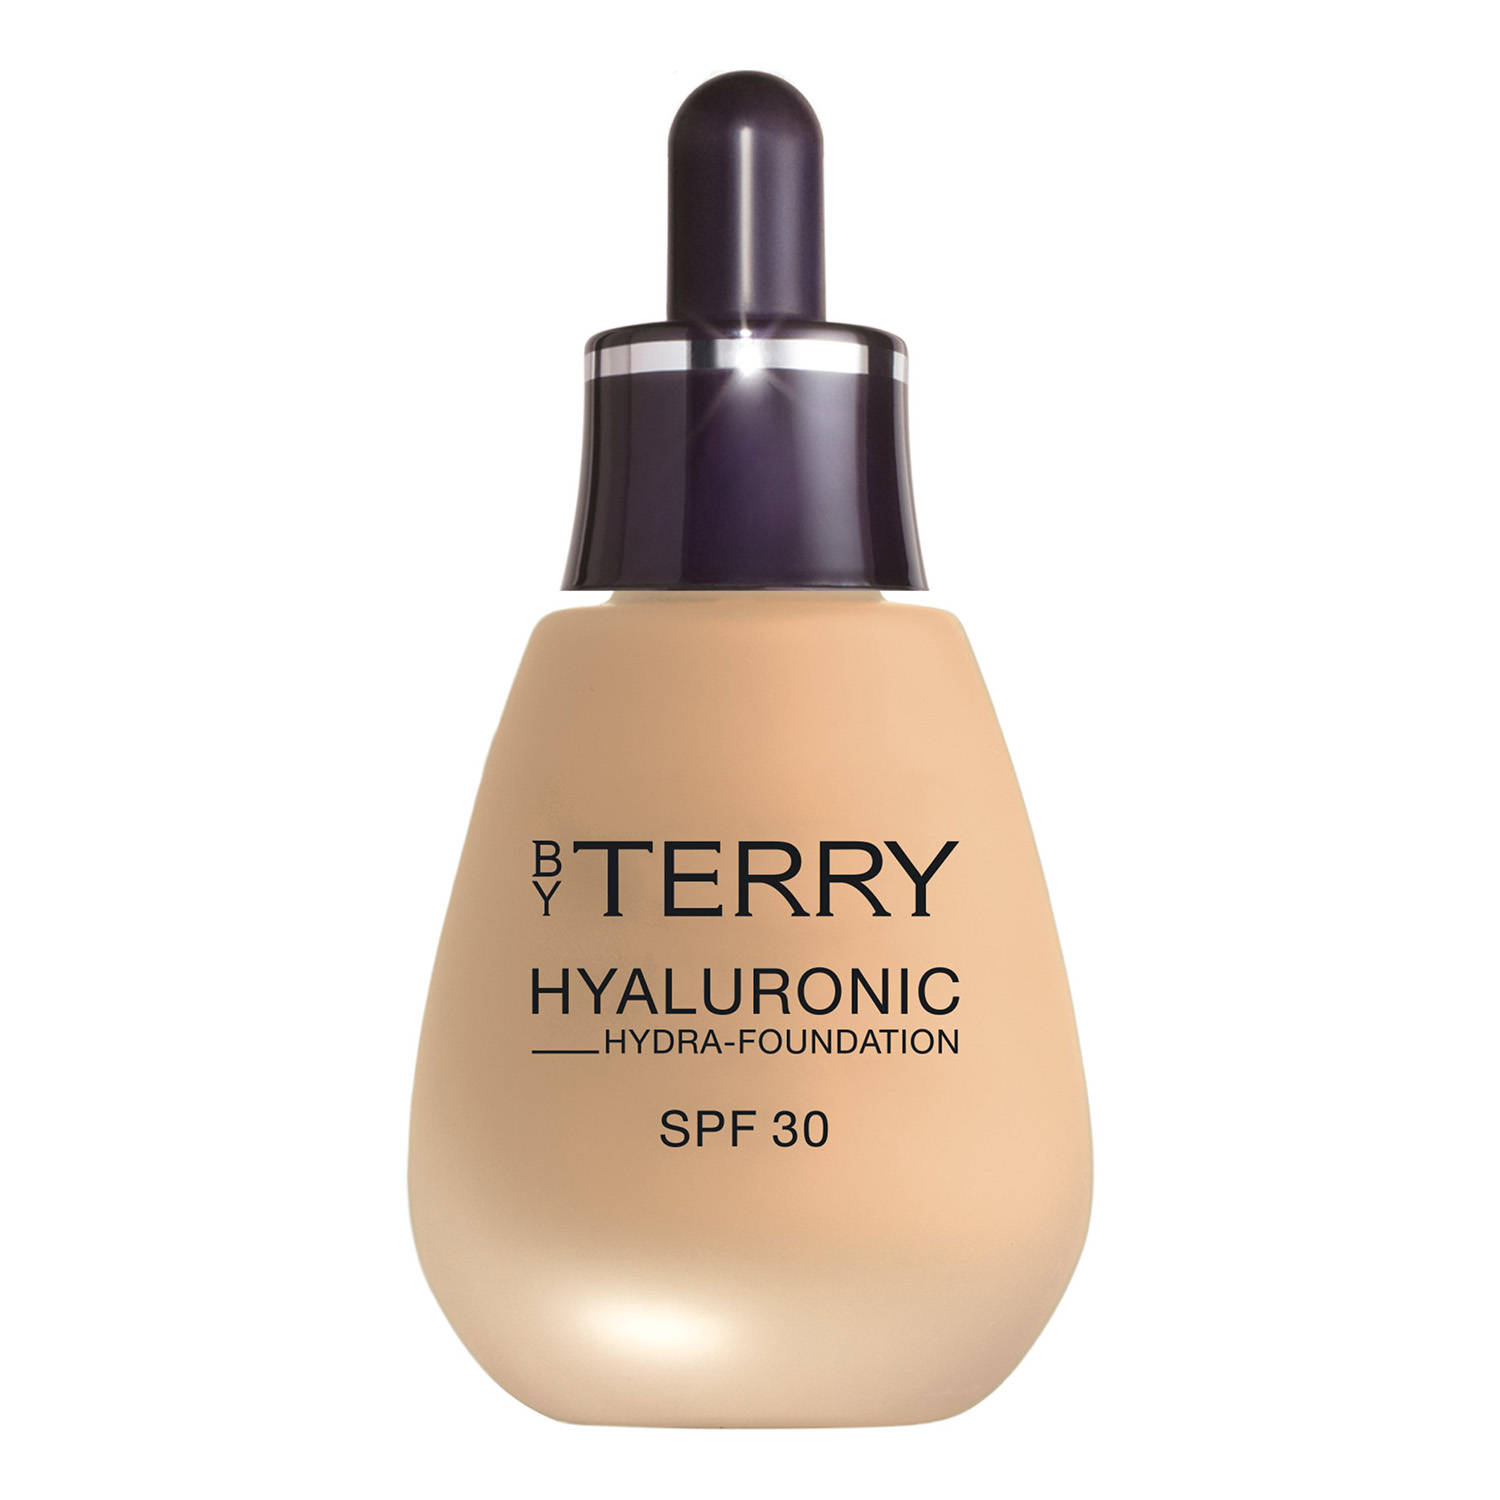 BY TERRY Hyaluronic Hydra-Foundation Base de Maquillaje